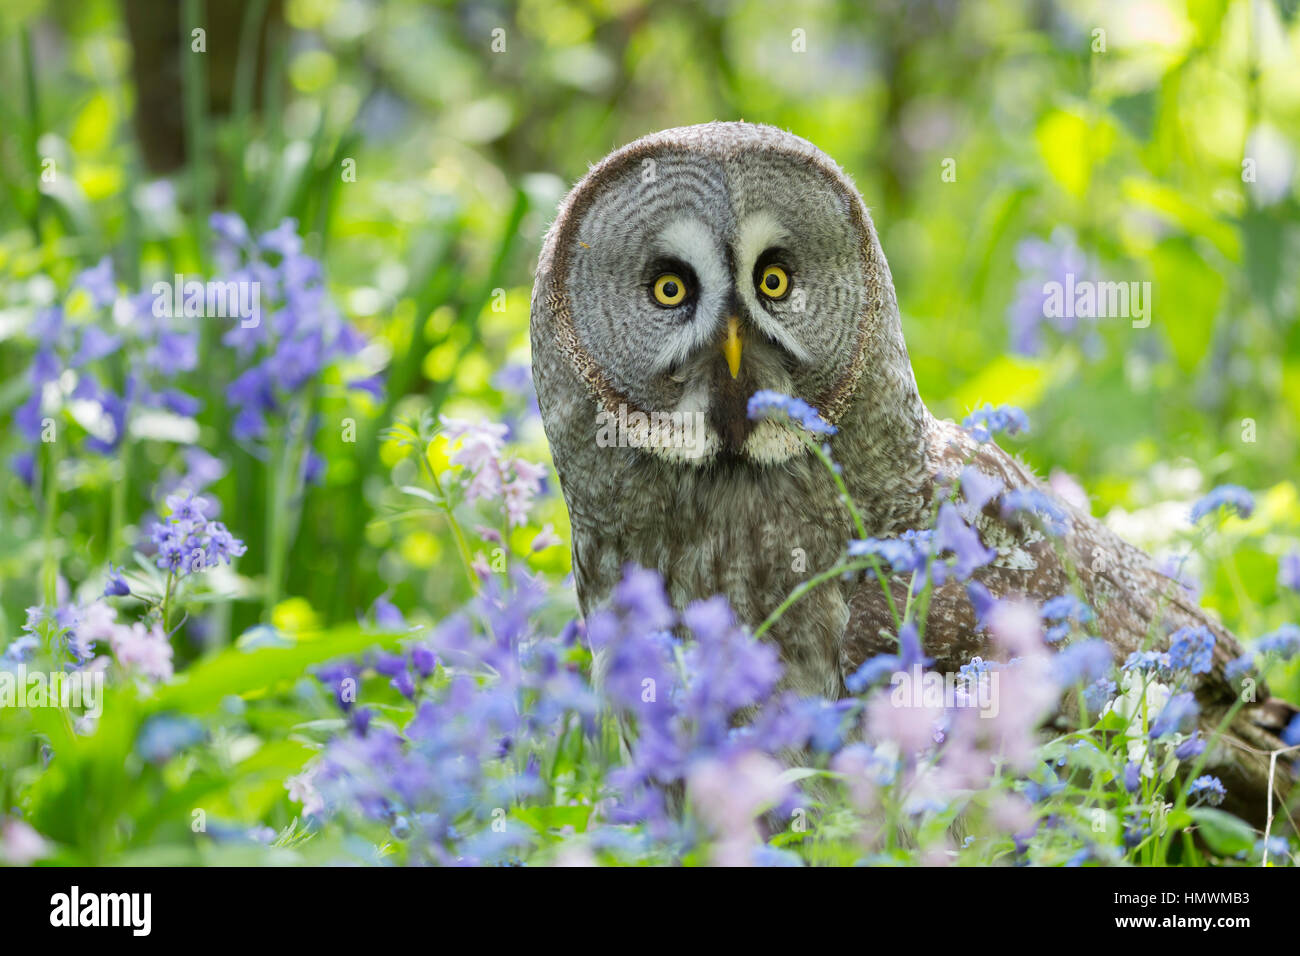 Great grey owl Strix nebulosa (captive), adult female, perched amongst woodland flowers, Hawk Conservancy Trust, - Stock Image